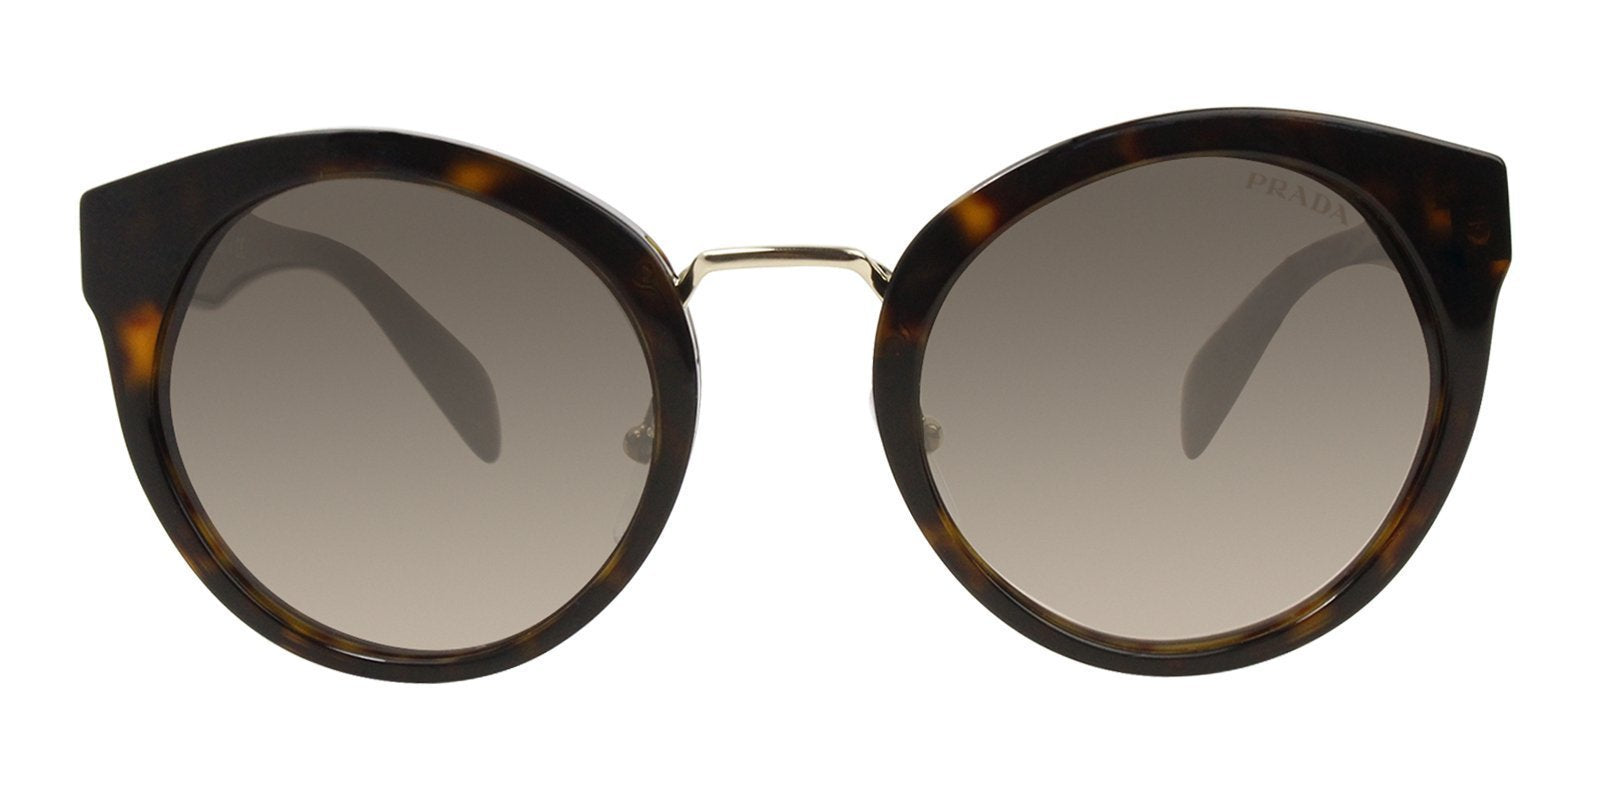 Prada - PR05TS Tortoise/Gray Gradient Oval Women Sunglasses - 53mm-Sunglasses-Designer Eyes